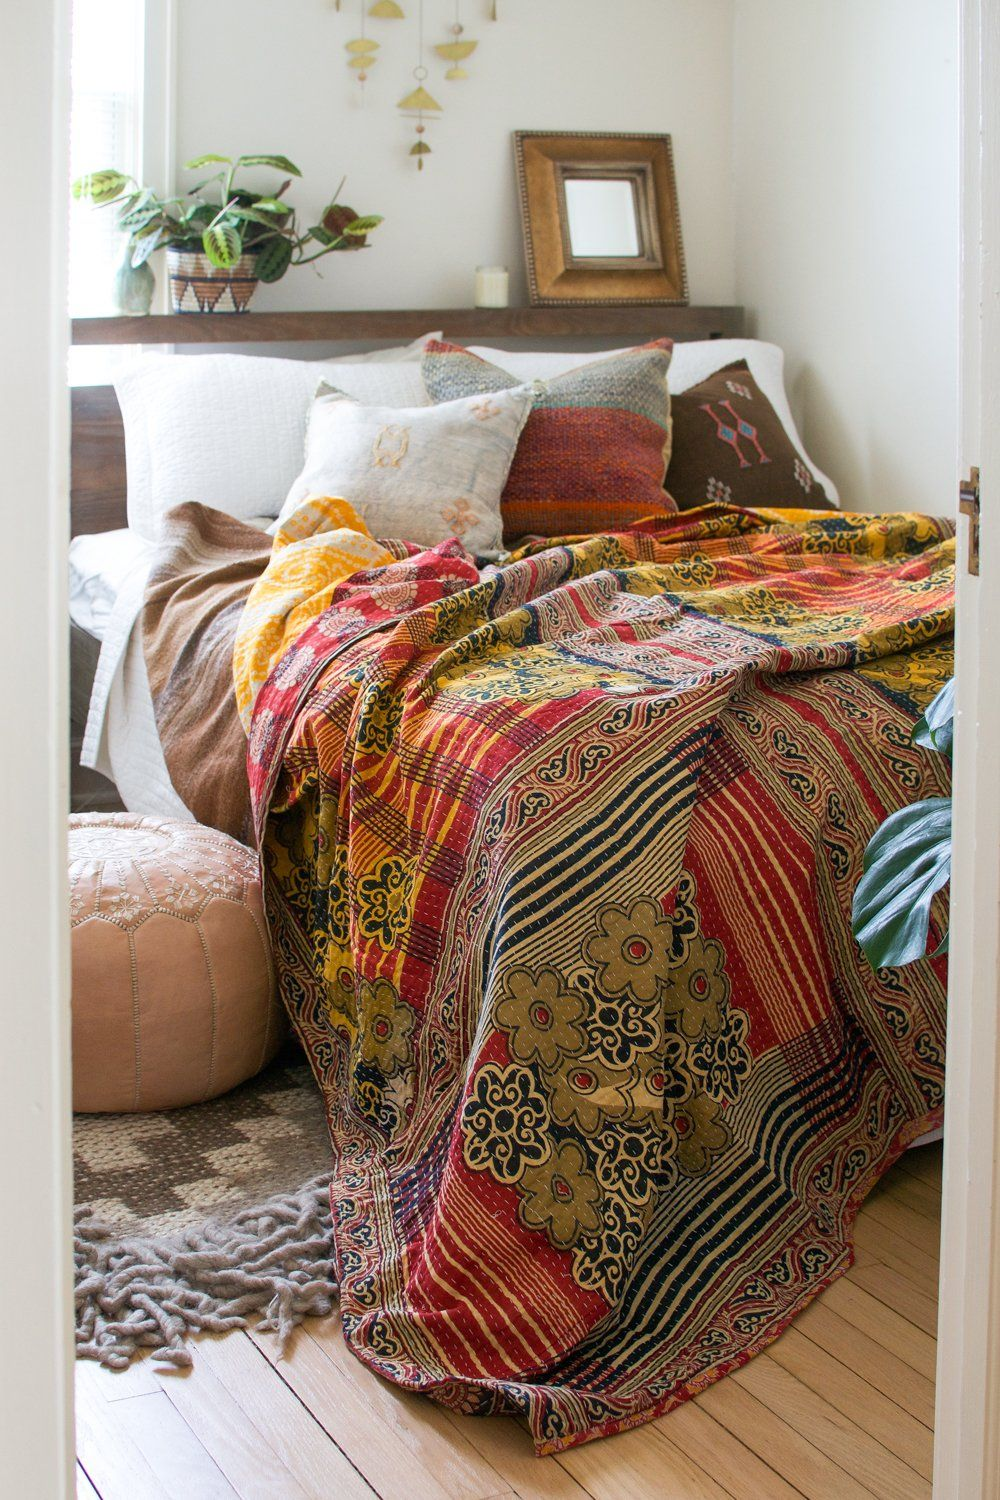 Vintage Kantha Quilt III  Bedroom decor on a budget, Vintage